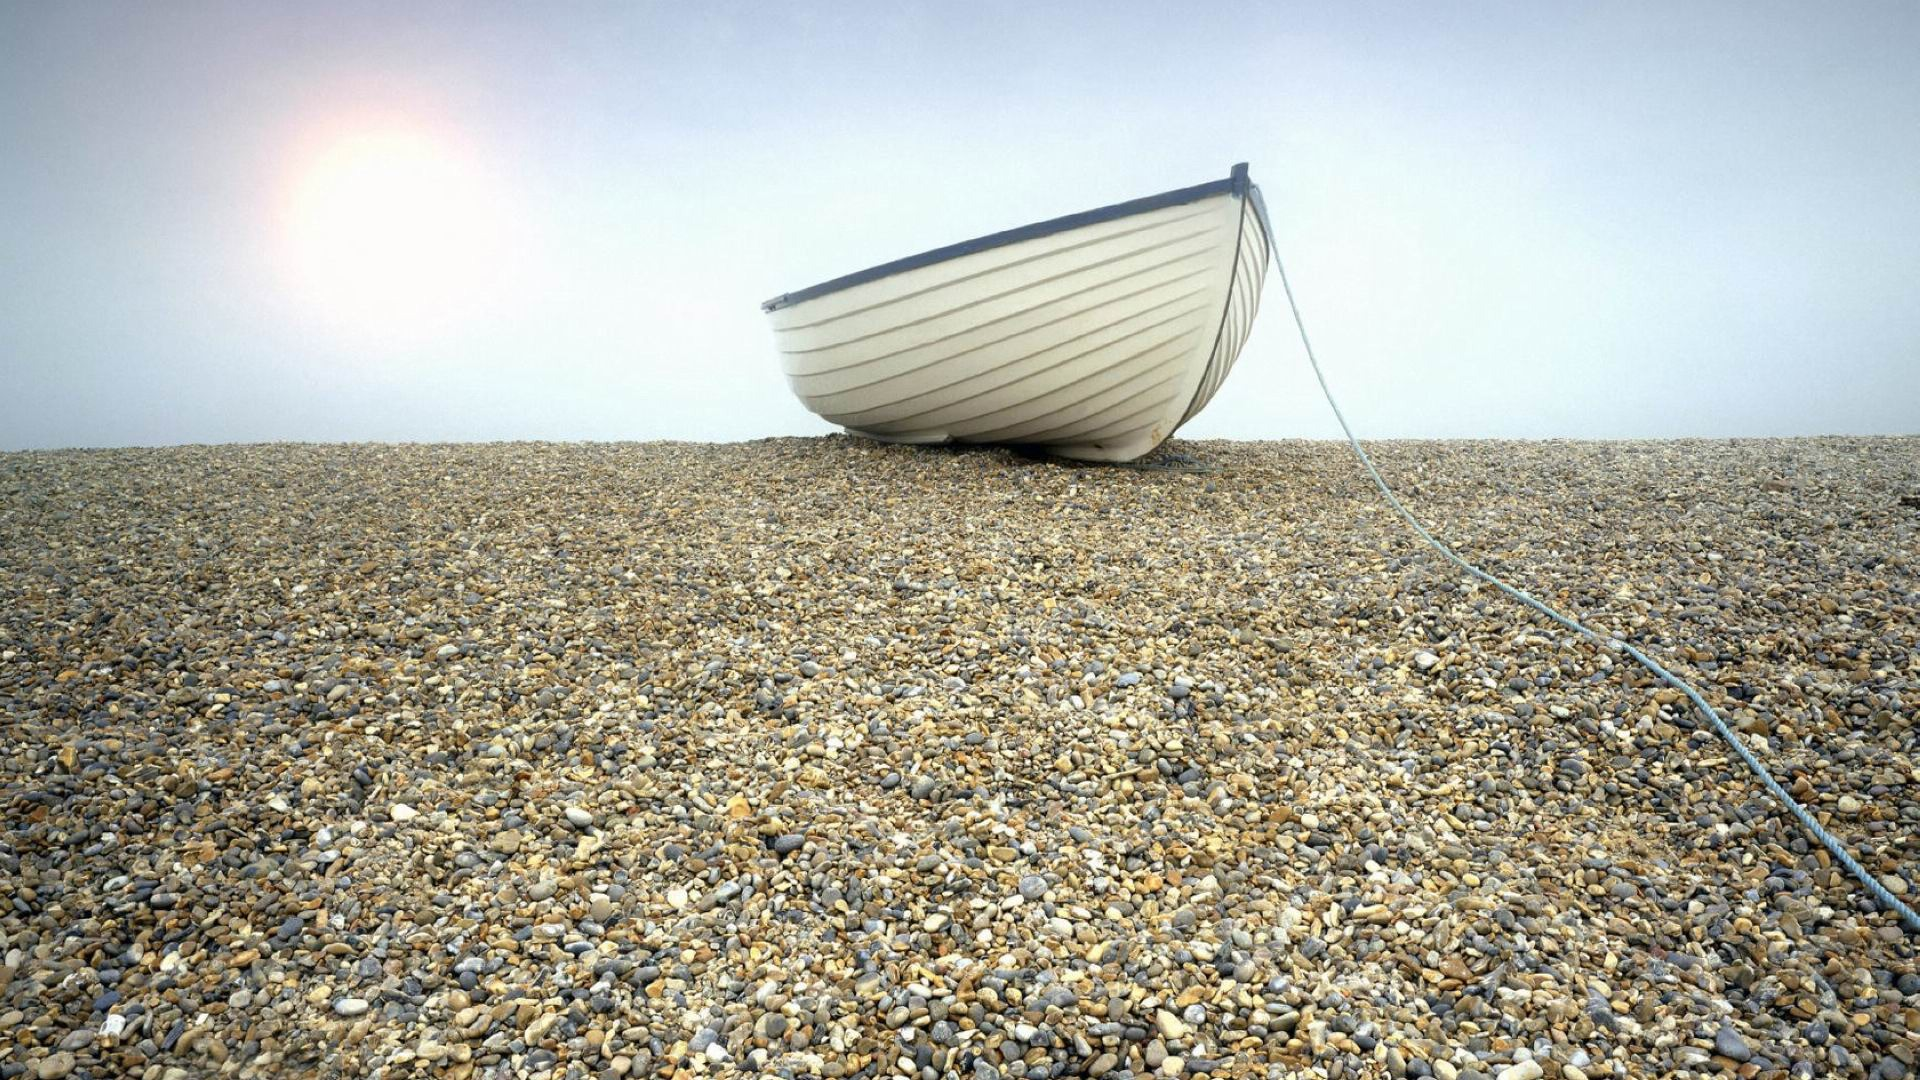 Boat_on_the_shore-2012_landscape_Featured_Wallpaper_1920x1080.jpg